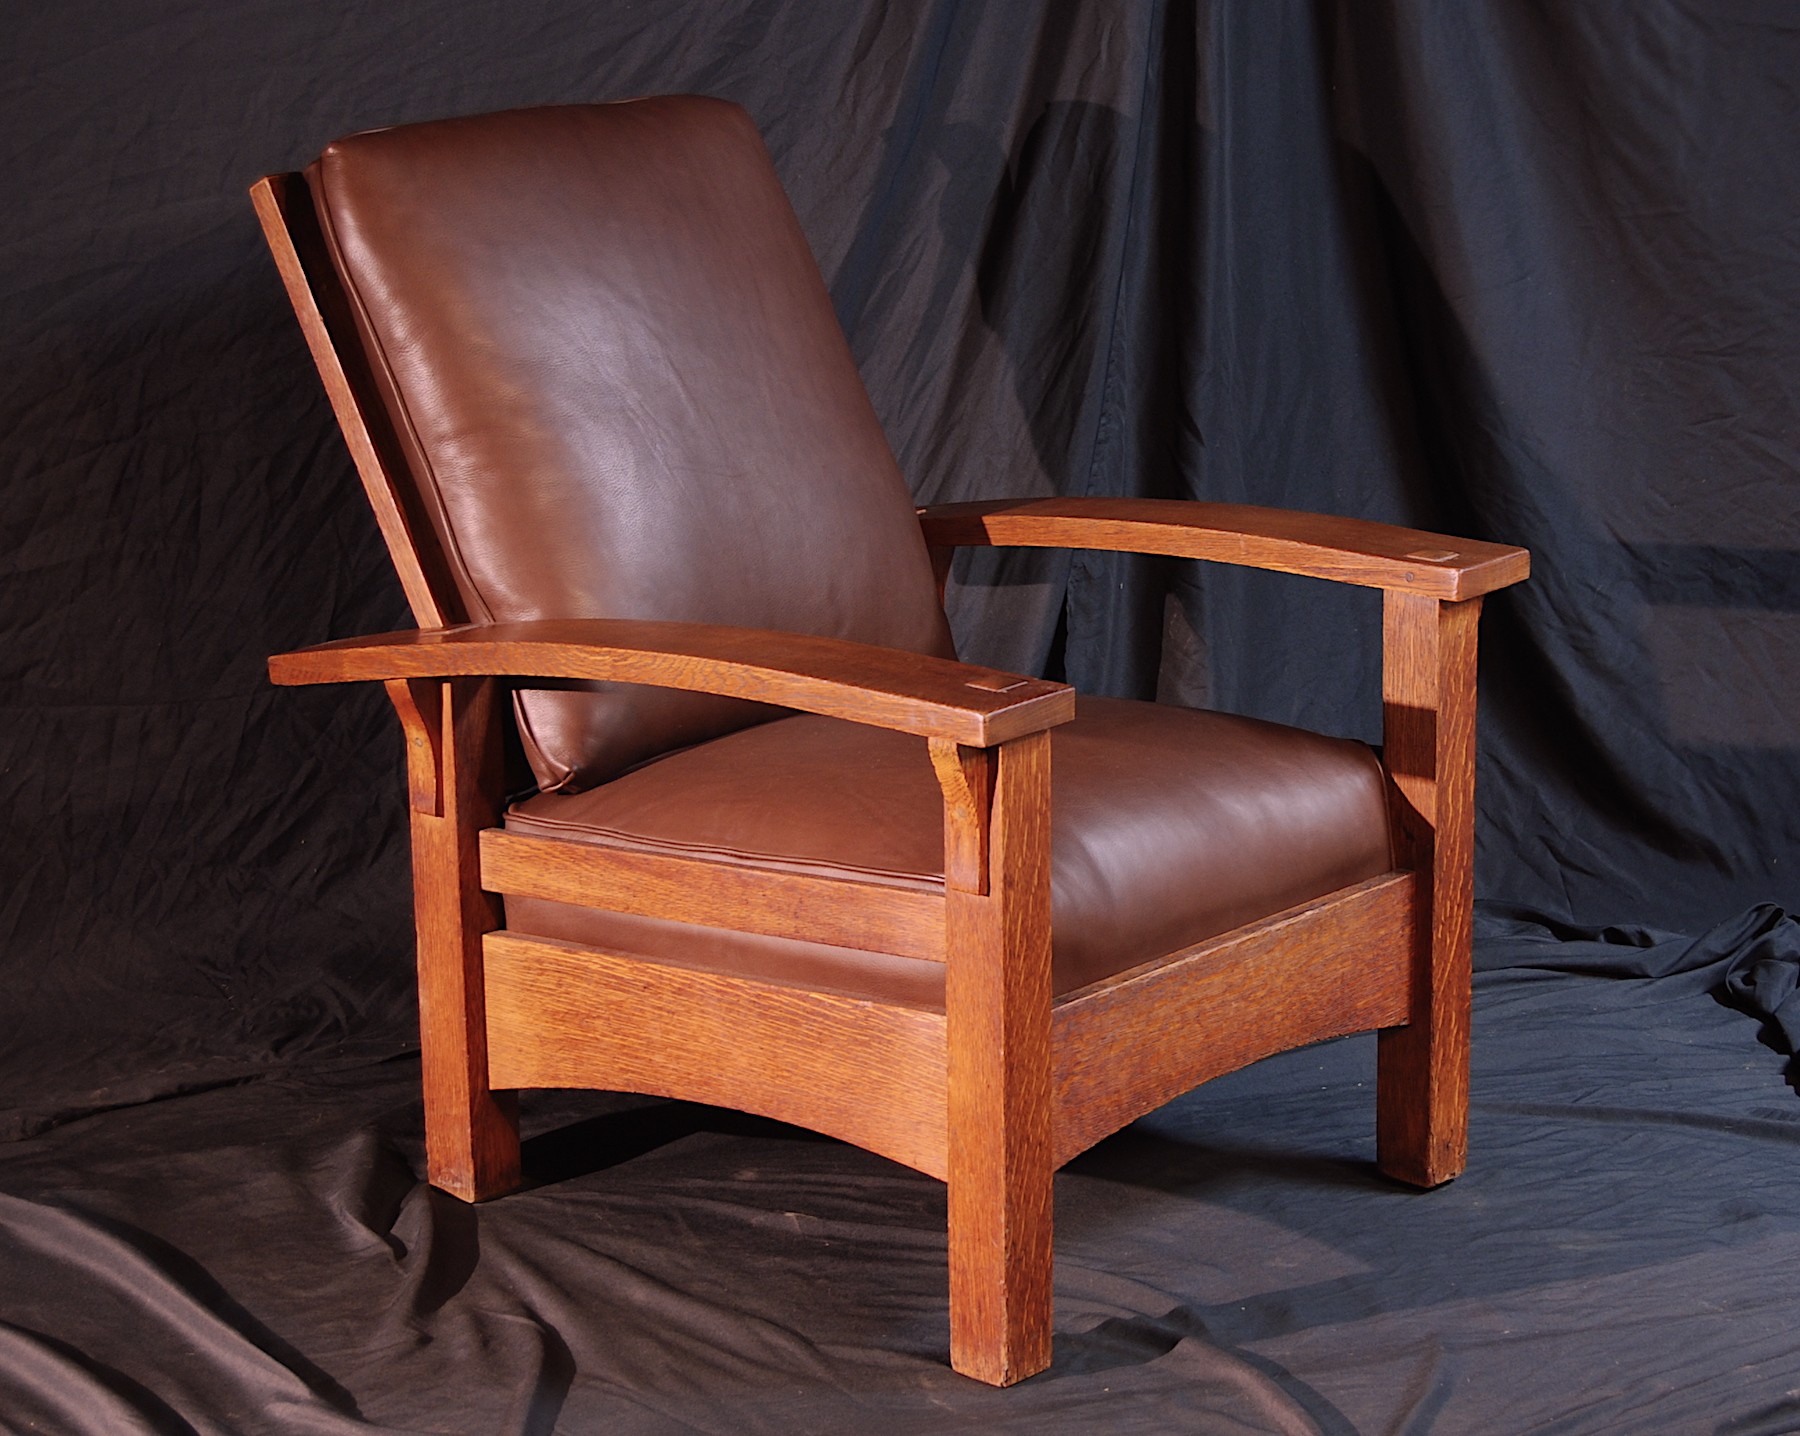 Morris Chairs Voorhees Craftsman Mission Oak Furniture Gustav Stickley